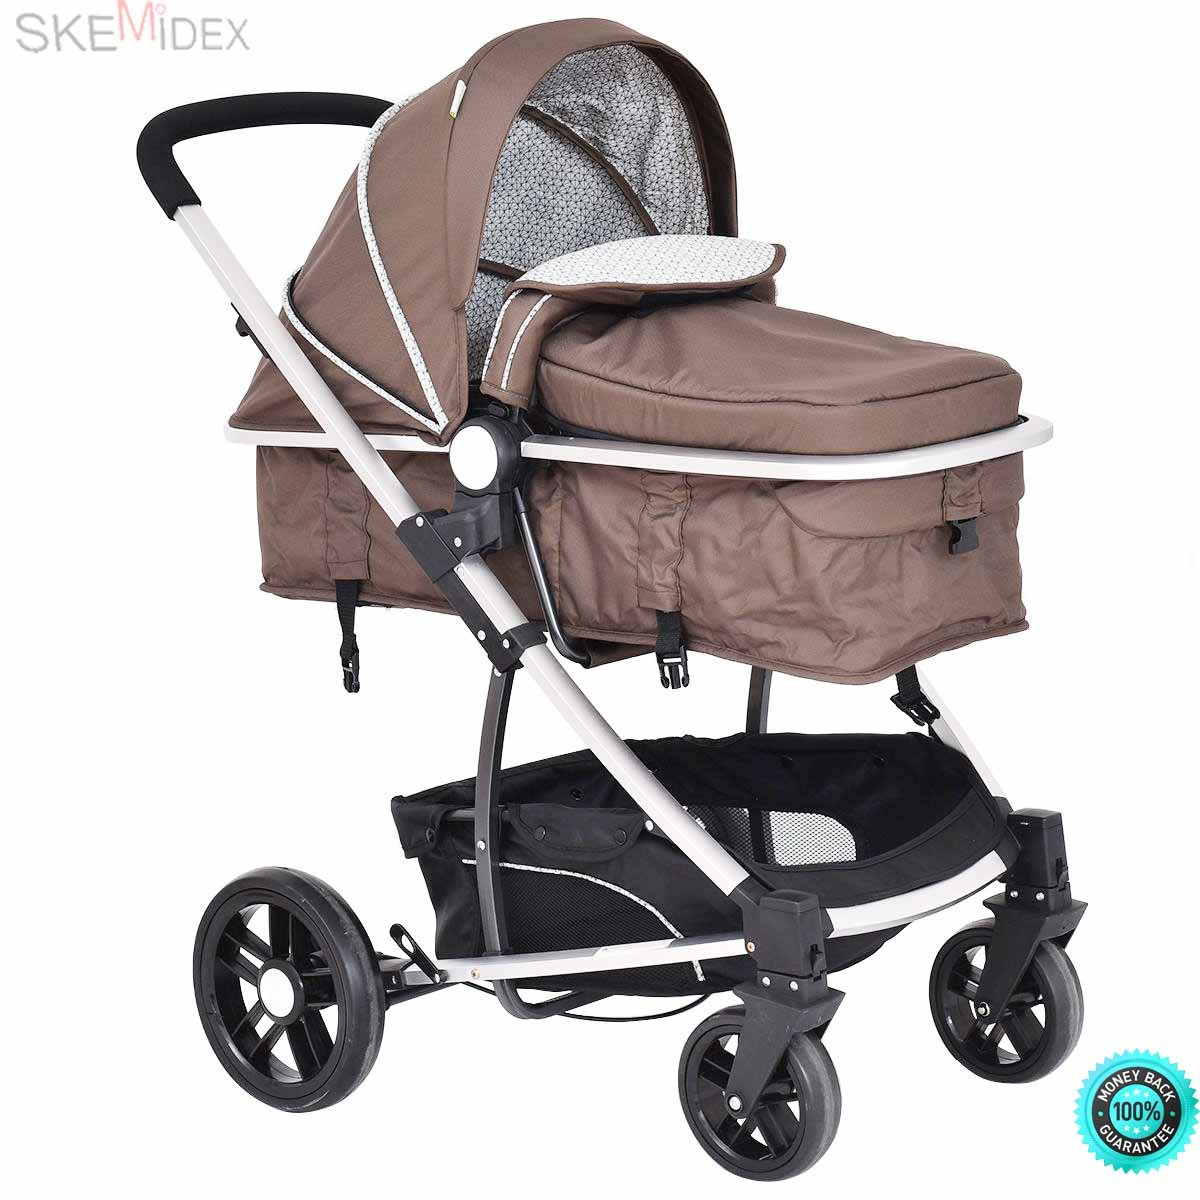 SKEMiDEX---2 In1 Foldable Baby Stroller Kids Travel Newborn Infant Buggy Pushchair Coffee This is our new 2 in1 baby stroller, which has three colors, including black Coffee and pink